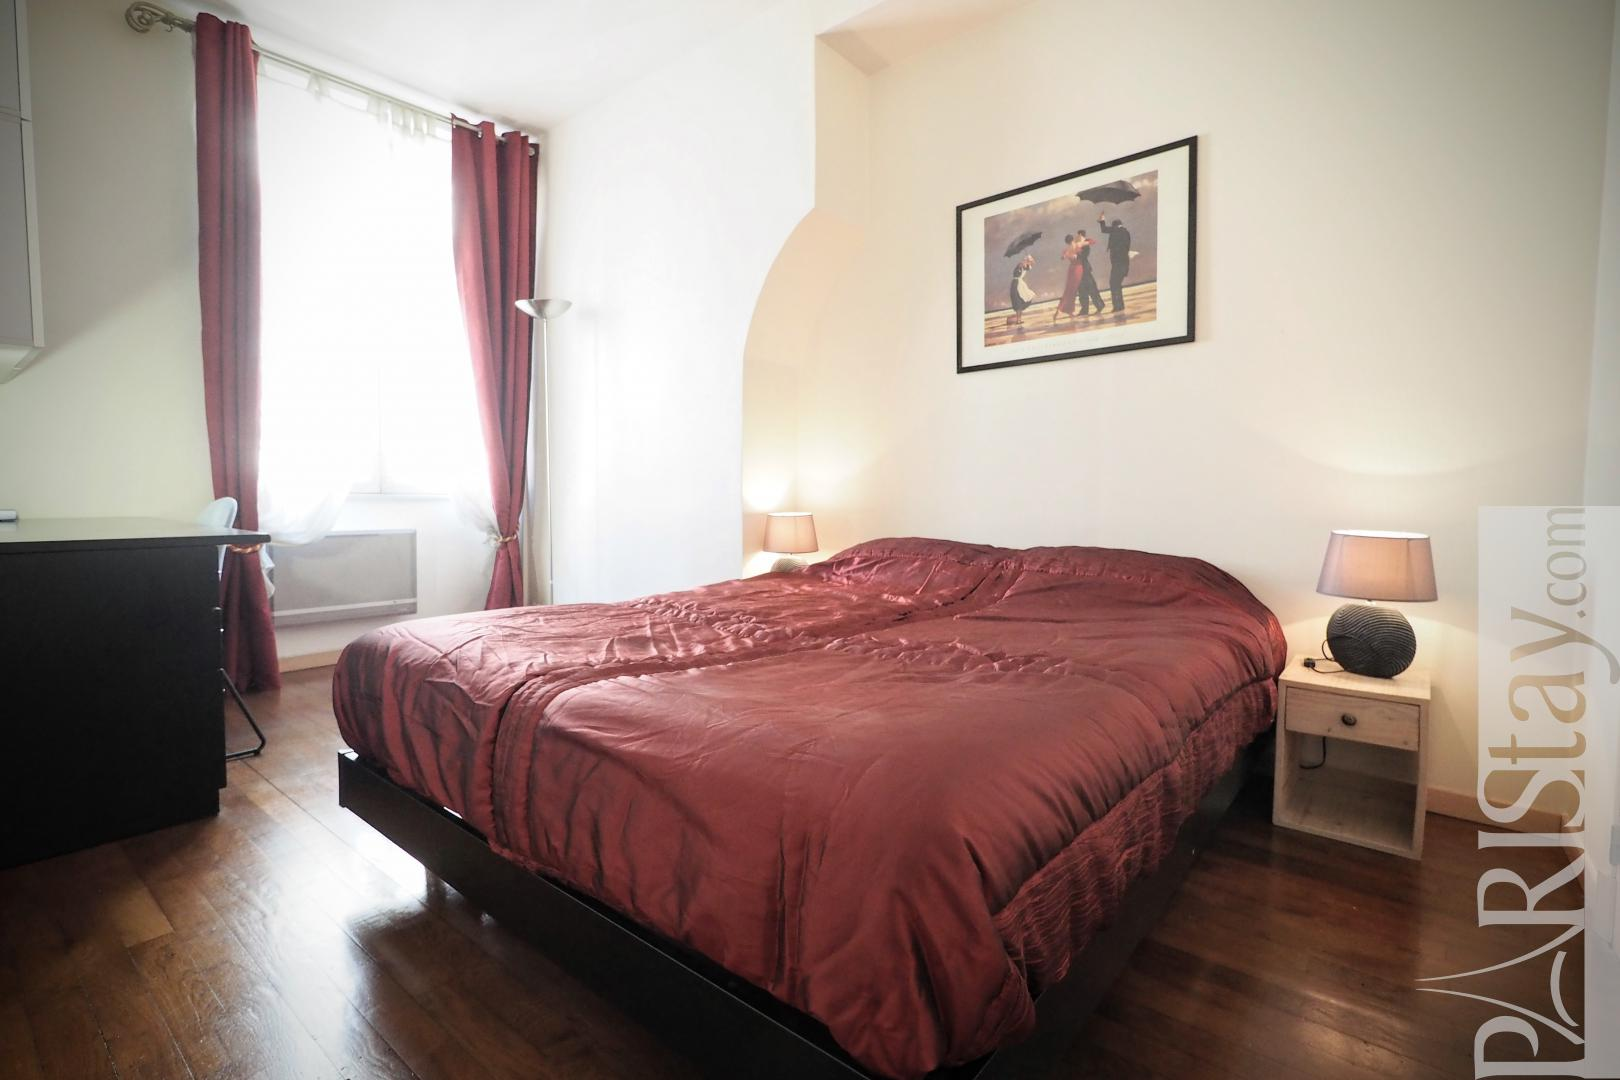 Two bedroom apartment for rent in paris Palais Royal 75001